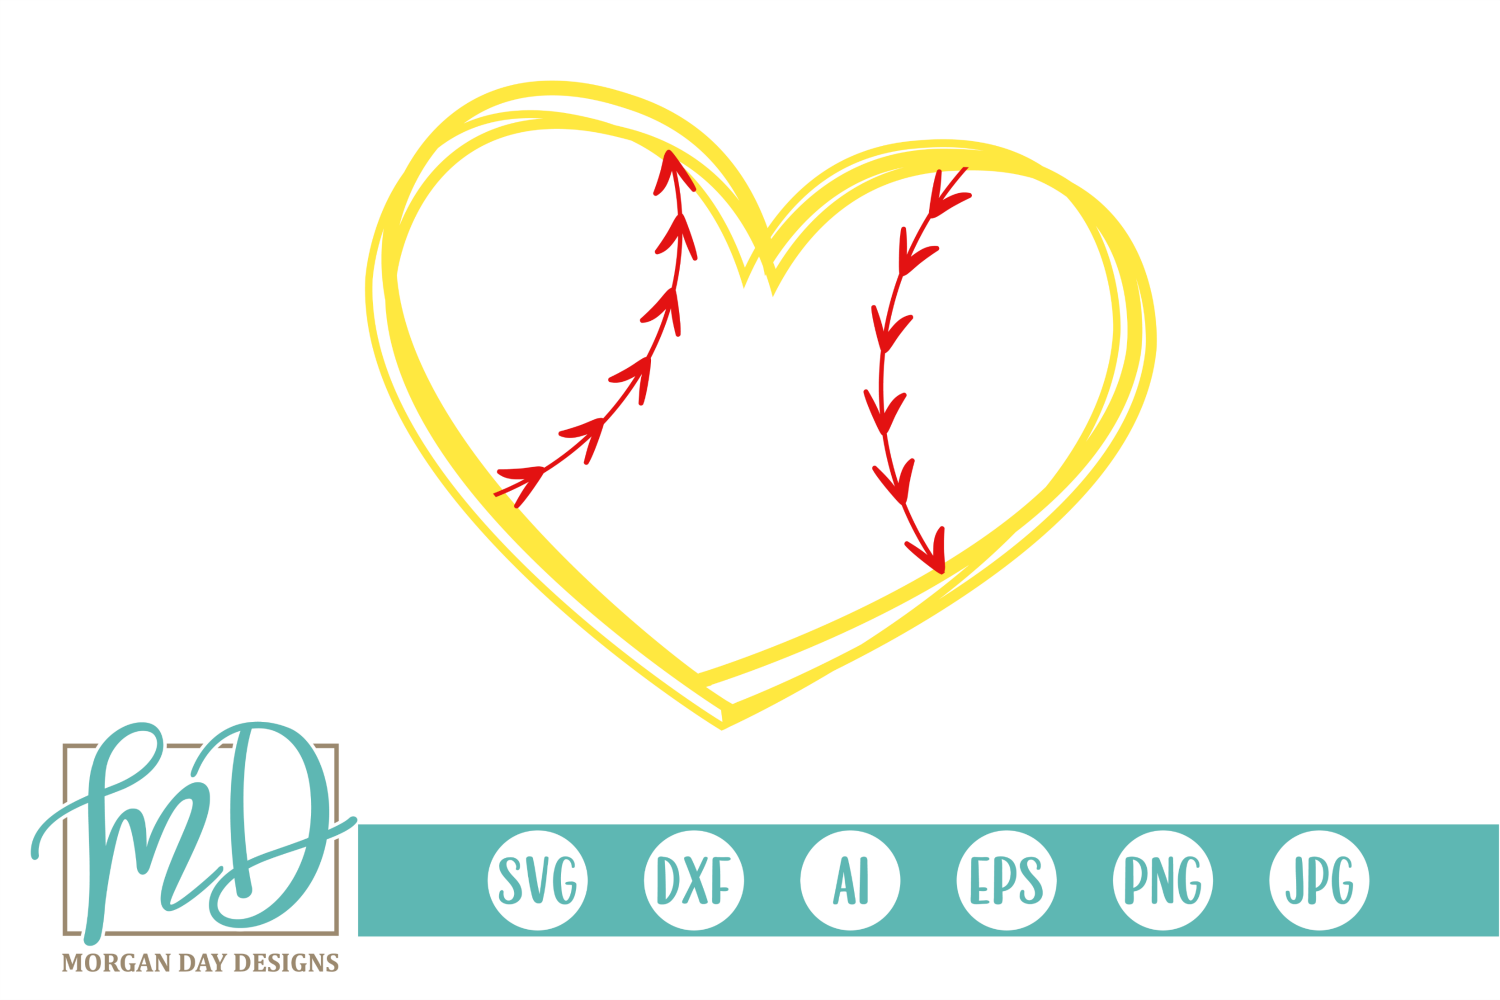 Download Free Softball Heart Graphic By Morgan Day Designs Creative Fabrica for Cricut Explore, Silhouette and other cutting machines.